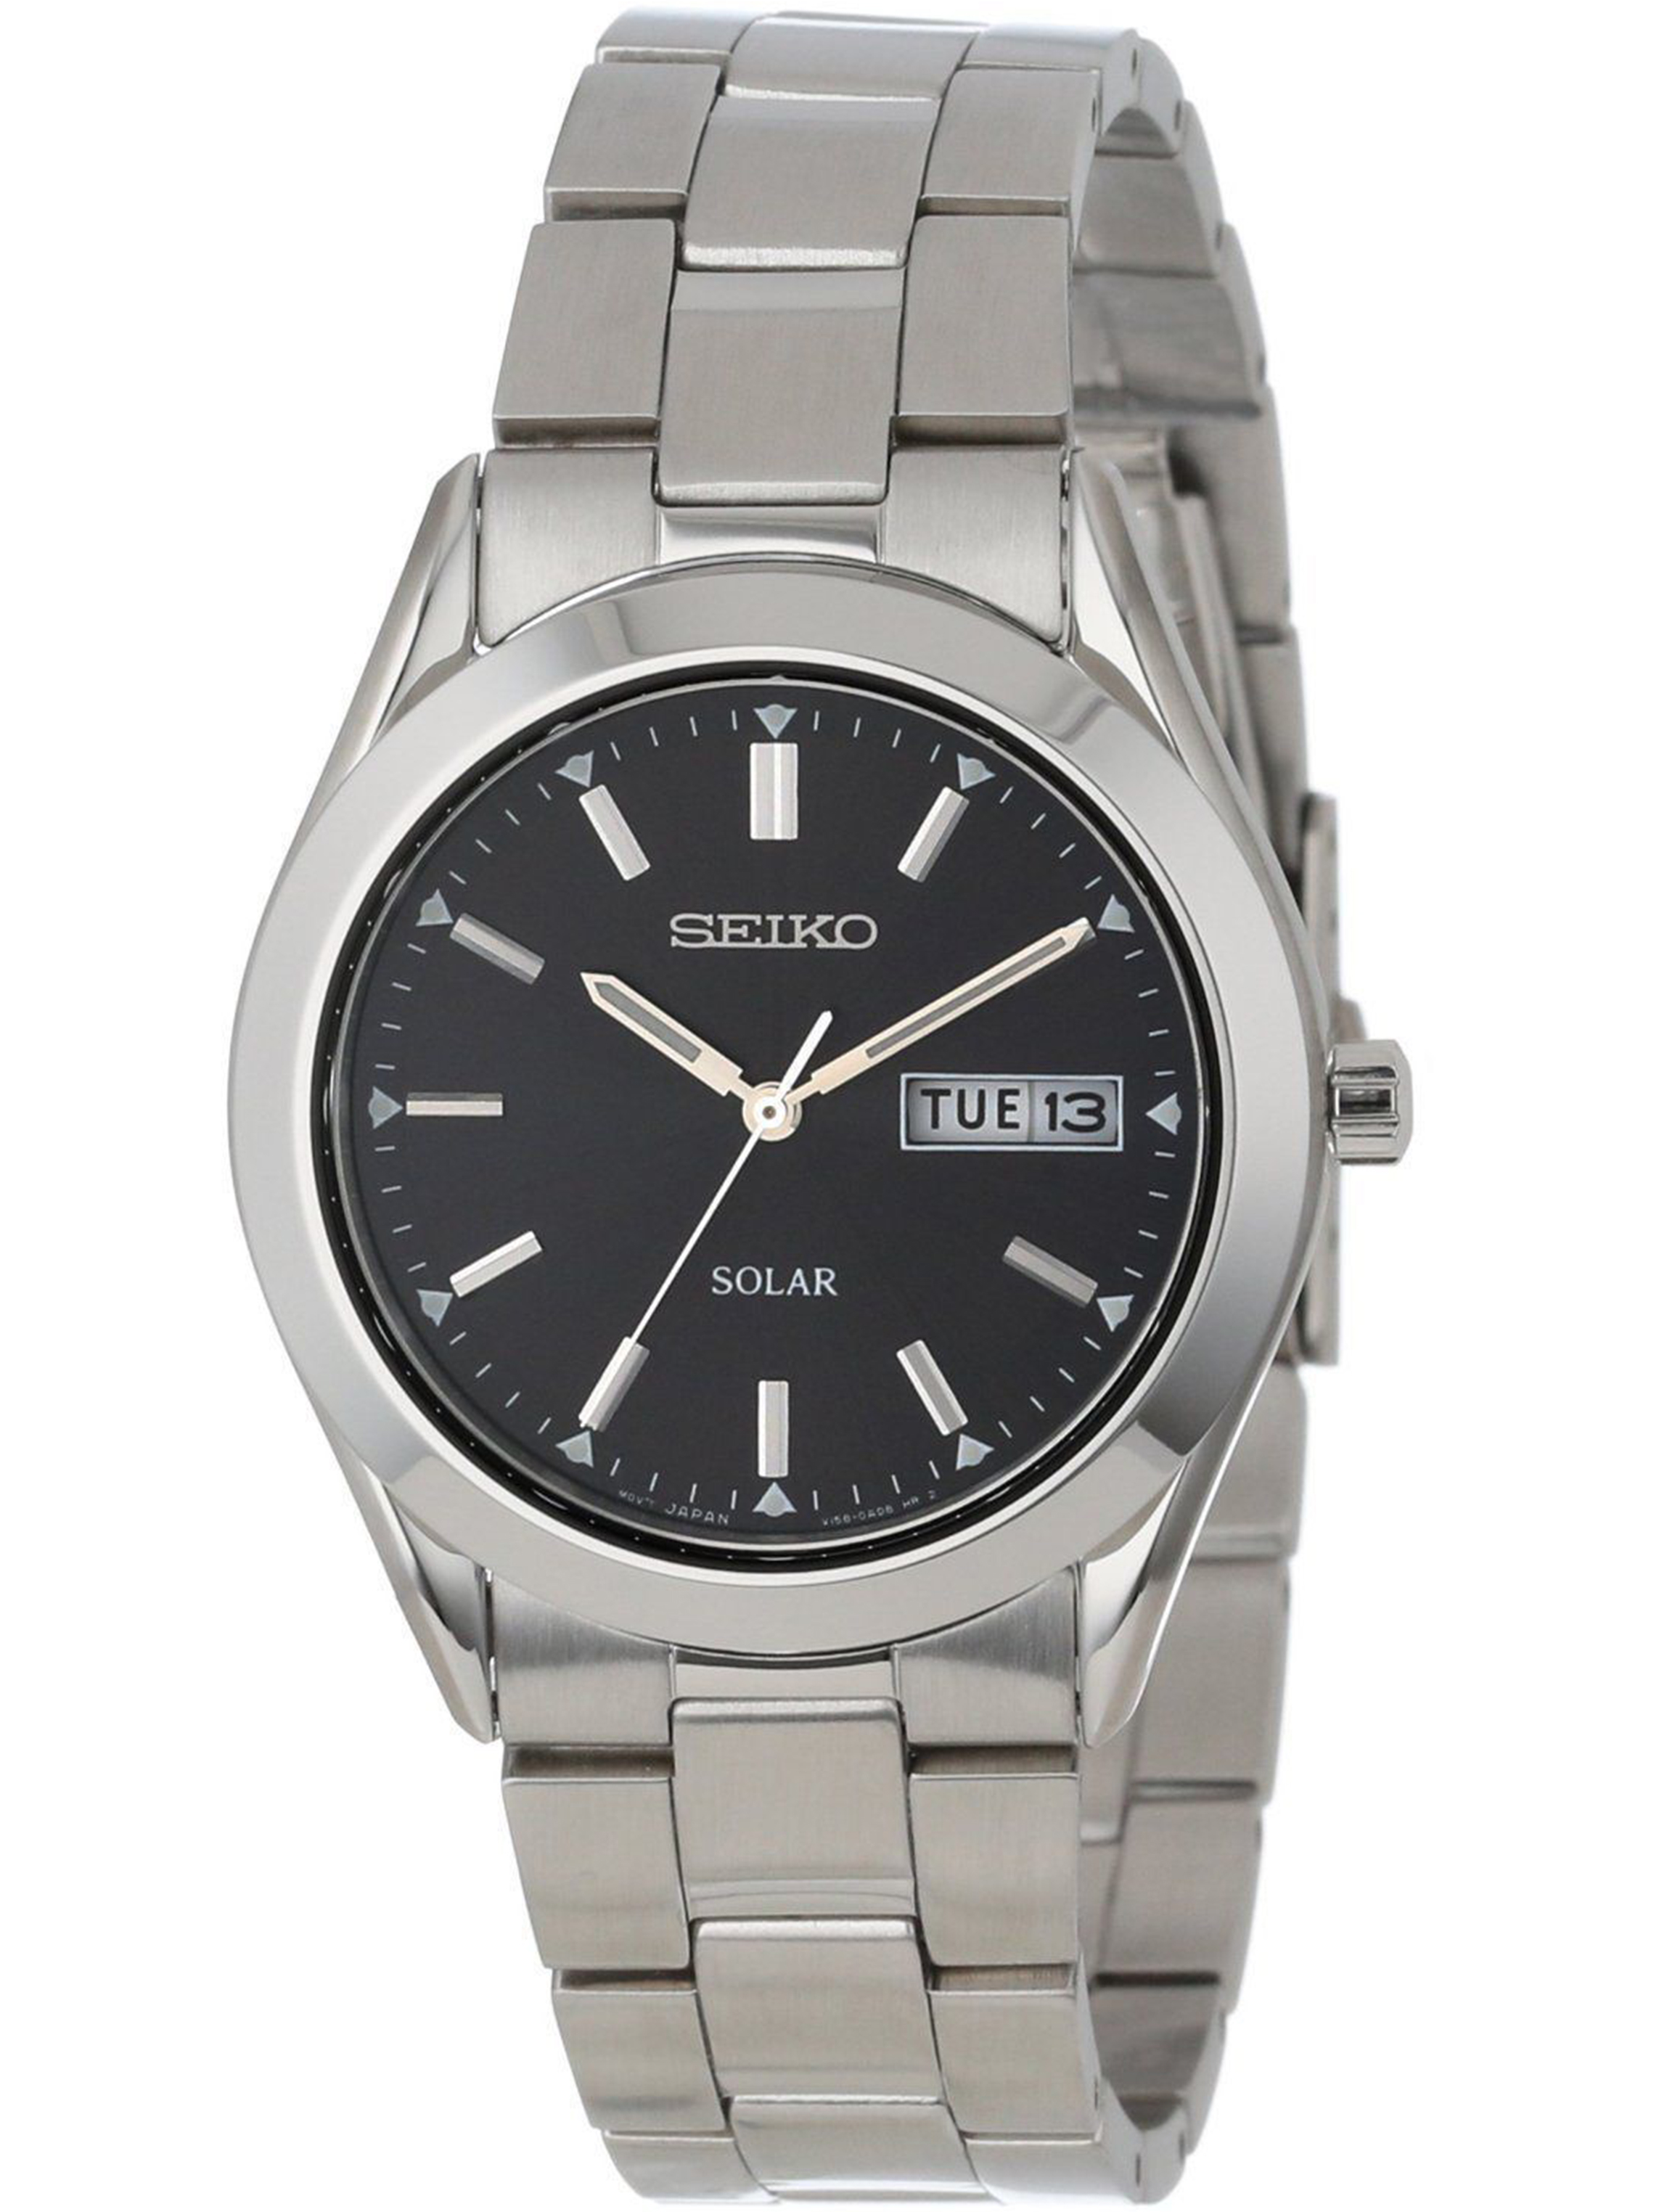 SEIKO SNE039P1,Men's Solar Quartz,Stainless steel Case and bracelet,day,date,100m WR,SNE039